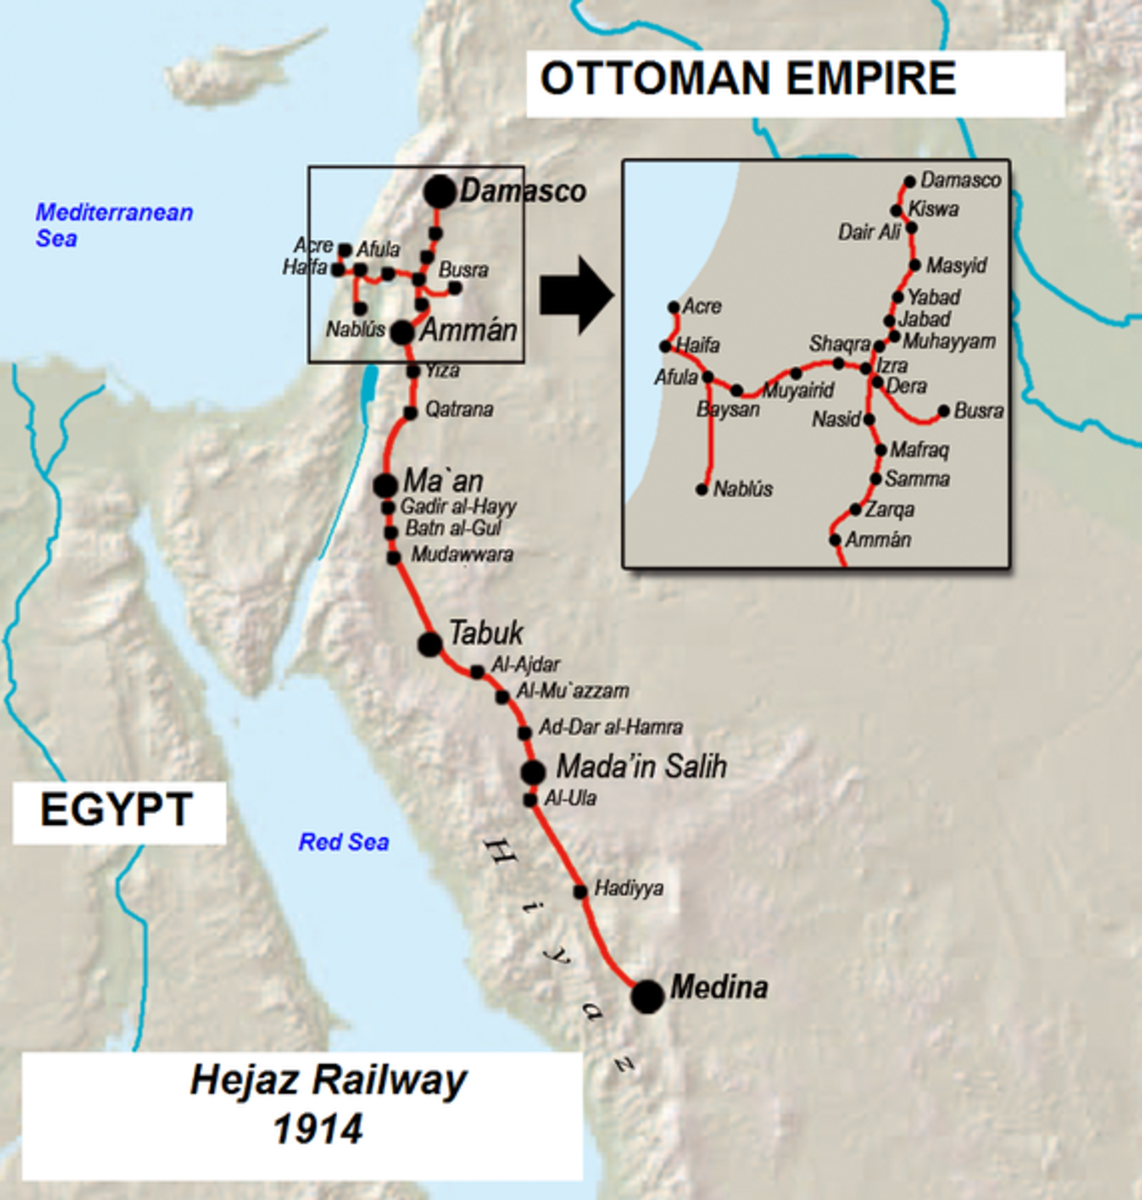 Lawrence of Arabia's Two Year Revolt 1914-16 and Its Influence on the Modern Middle East